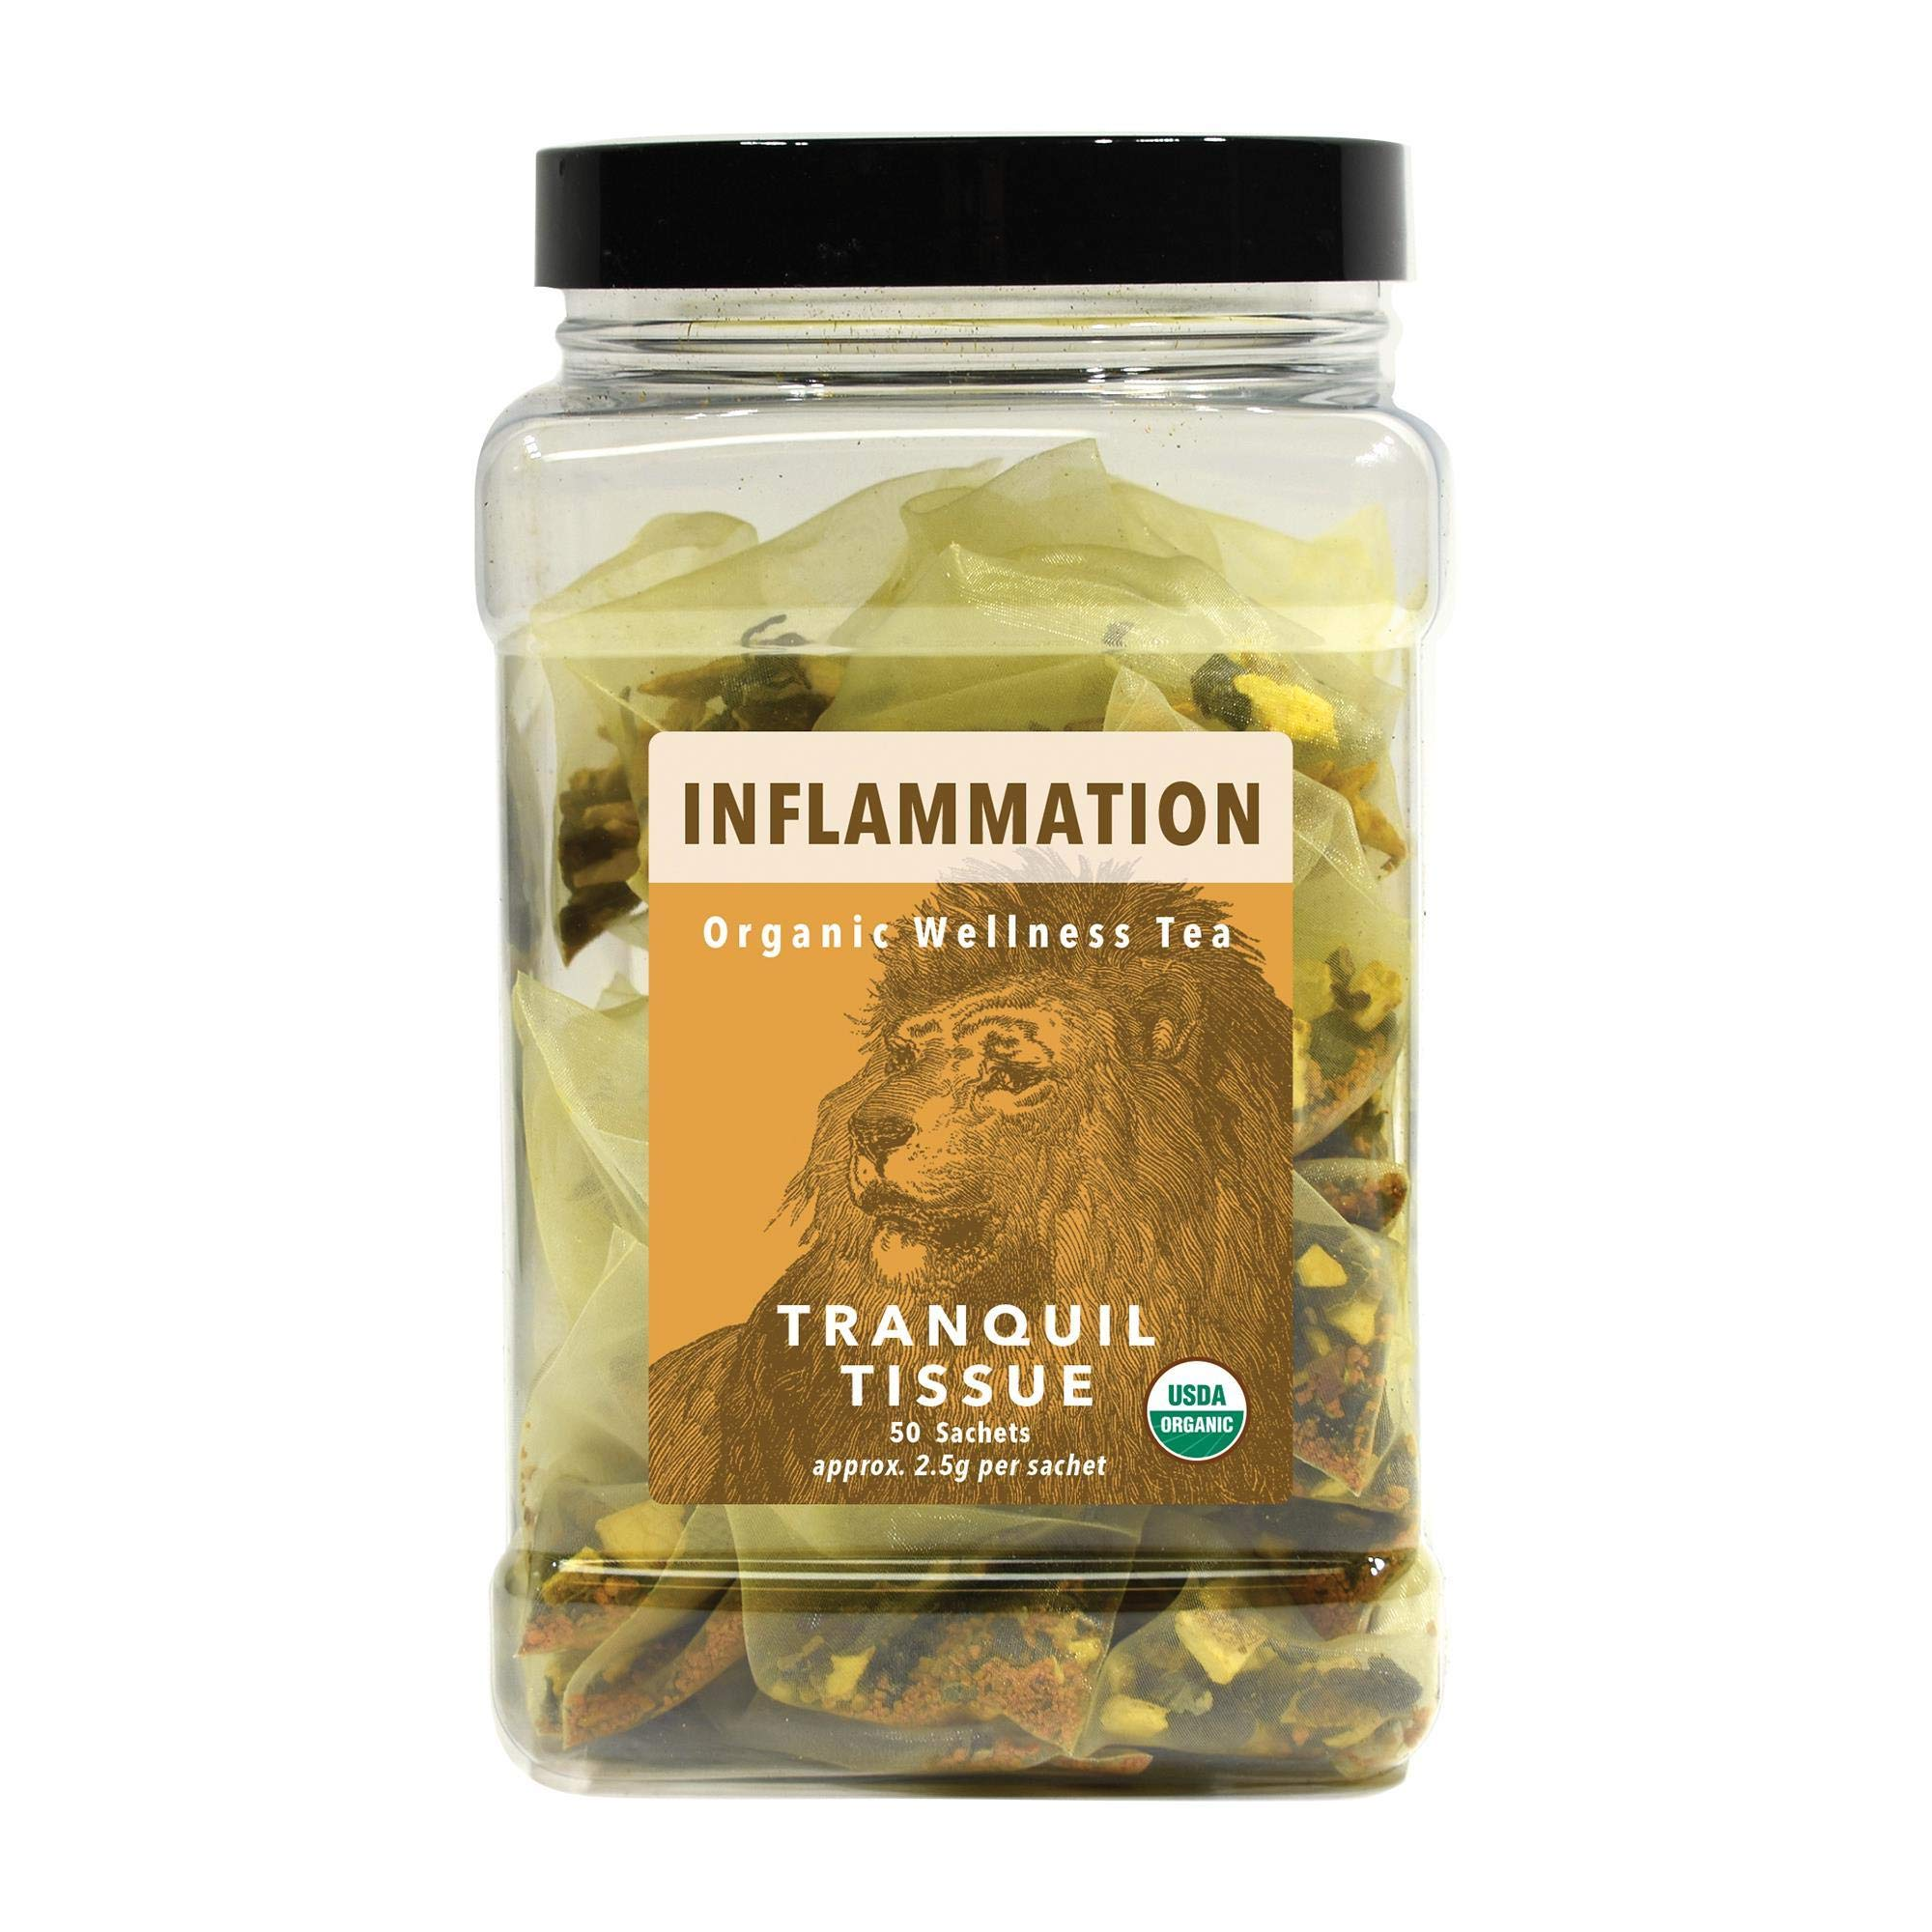 White Lion Inflammation (Tranquil Tissue) Wellness Tea   100% USDA Certified Organic   Antioxidant-Rich in Turmeric, Black Pepper, & Cacao Nibs   50 Count Canister